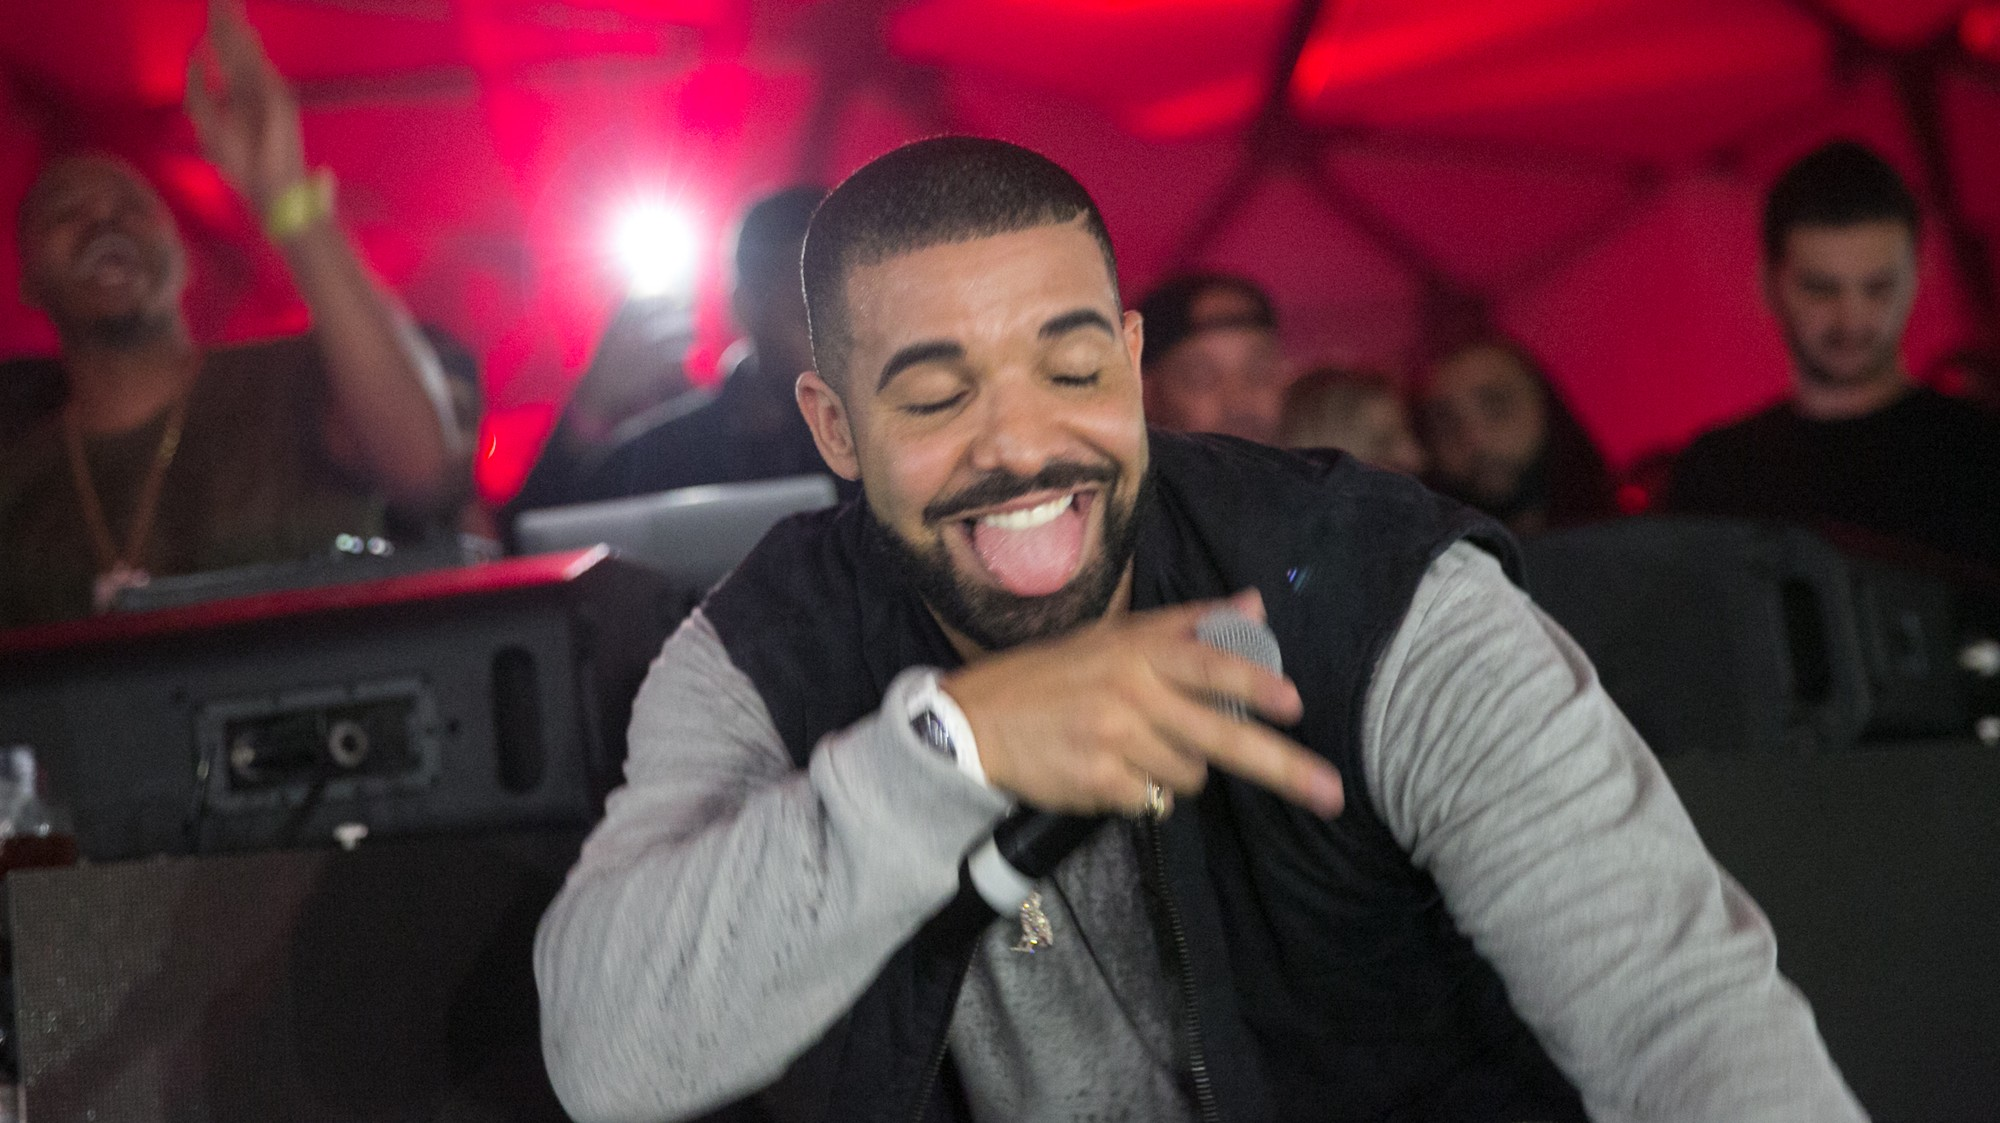 Drake's 'More Life' Is an Undeniable, Lovable Global Smash - VICE